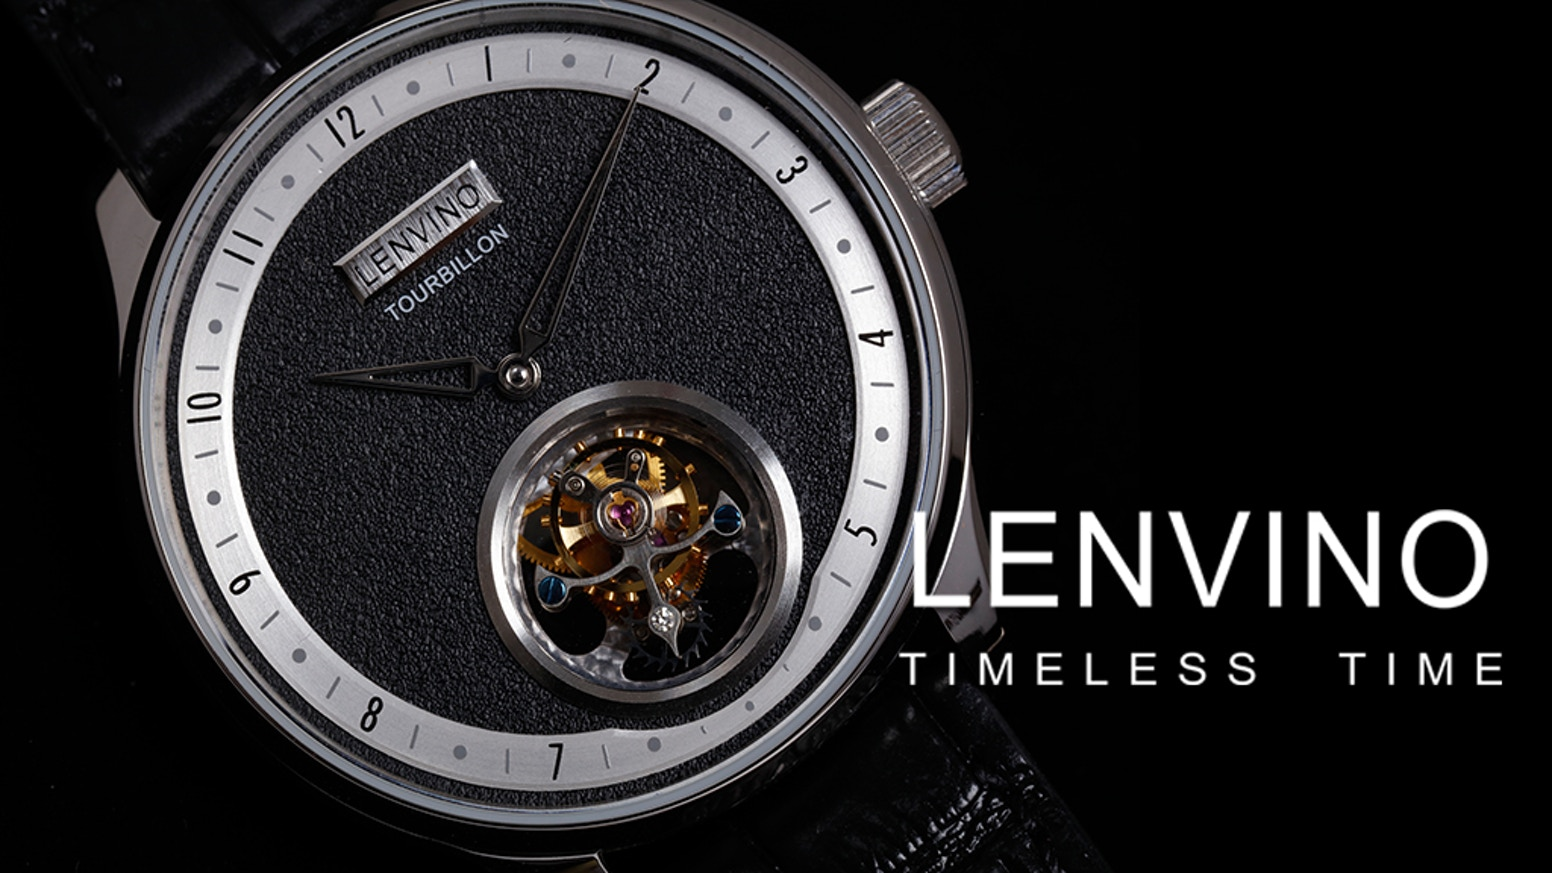 We strive to create legendary timepieces by combining traditional craftsmanship and innovative design.